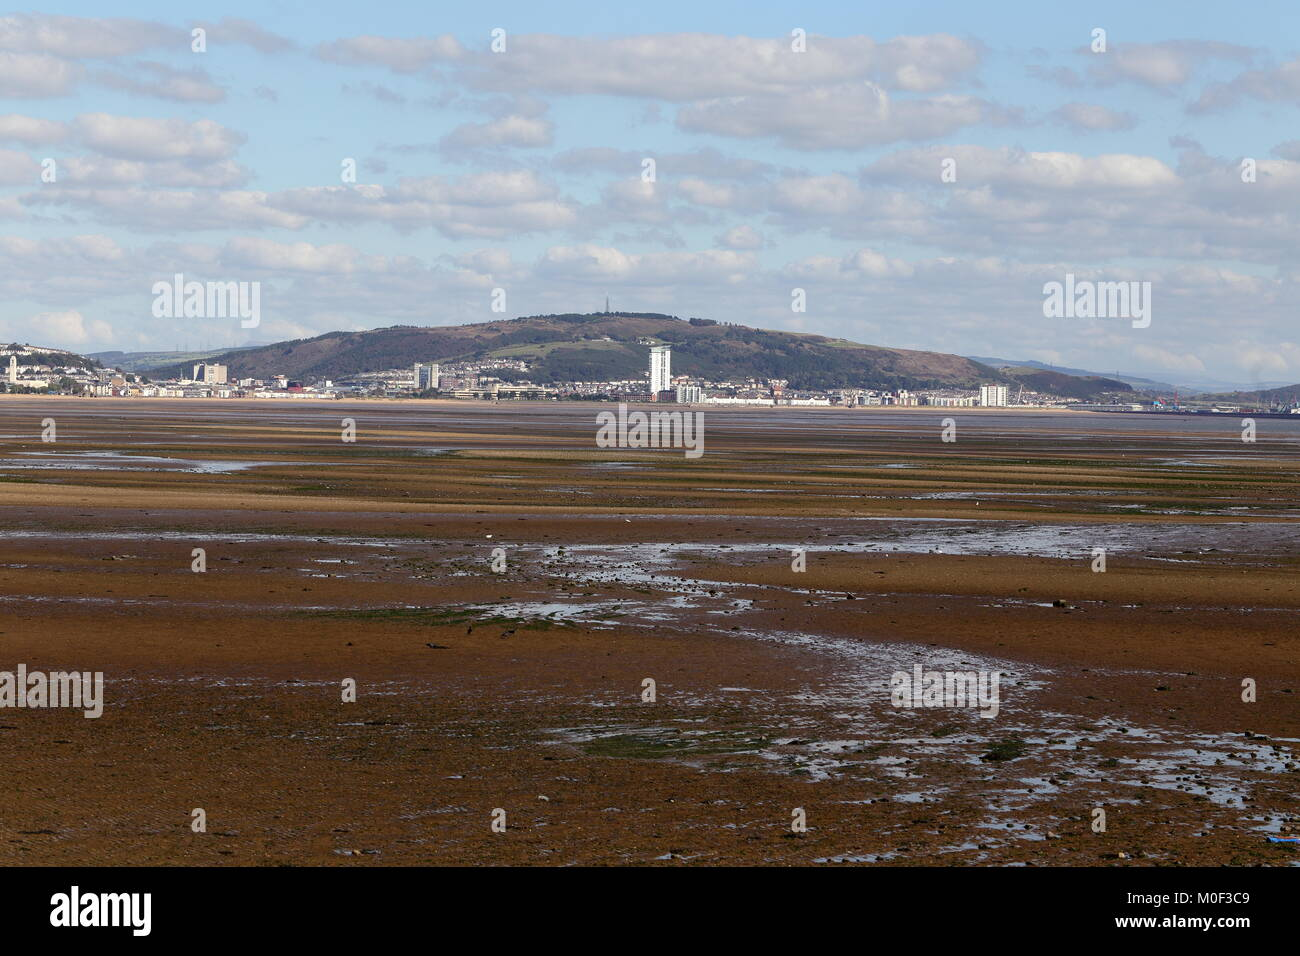 SWANSEA BAY, South Wales, UK - September 27, 2015: Swansea bay, seen here at low tide, is the proposed site for Stock Photo